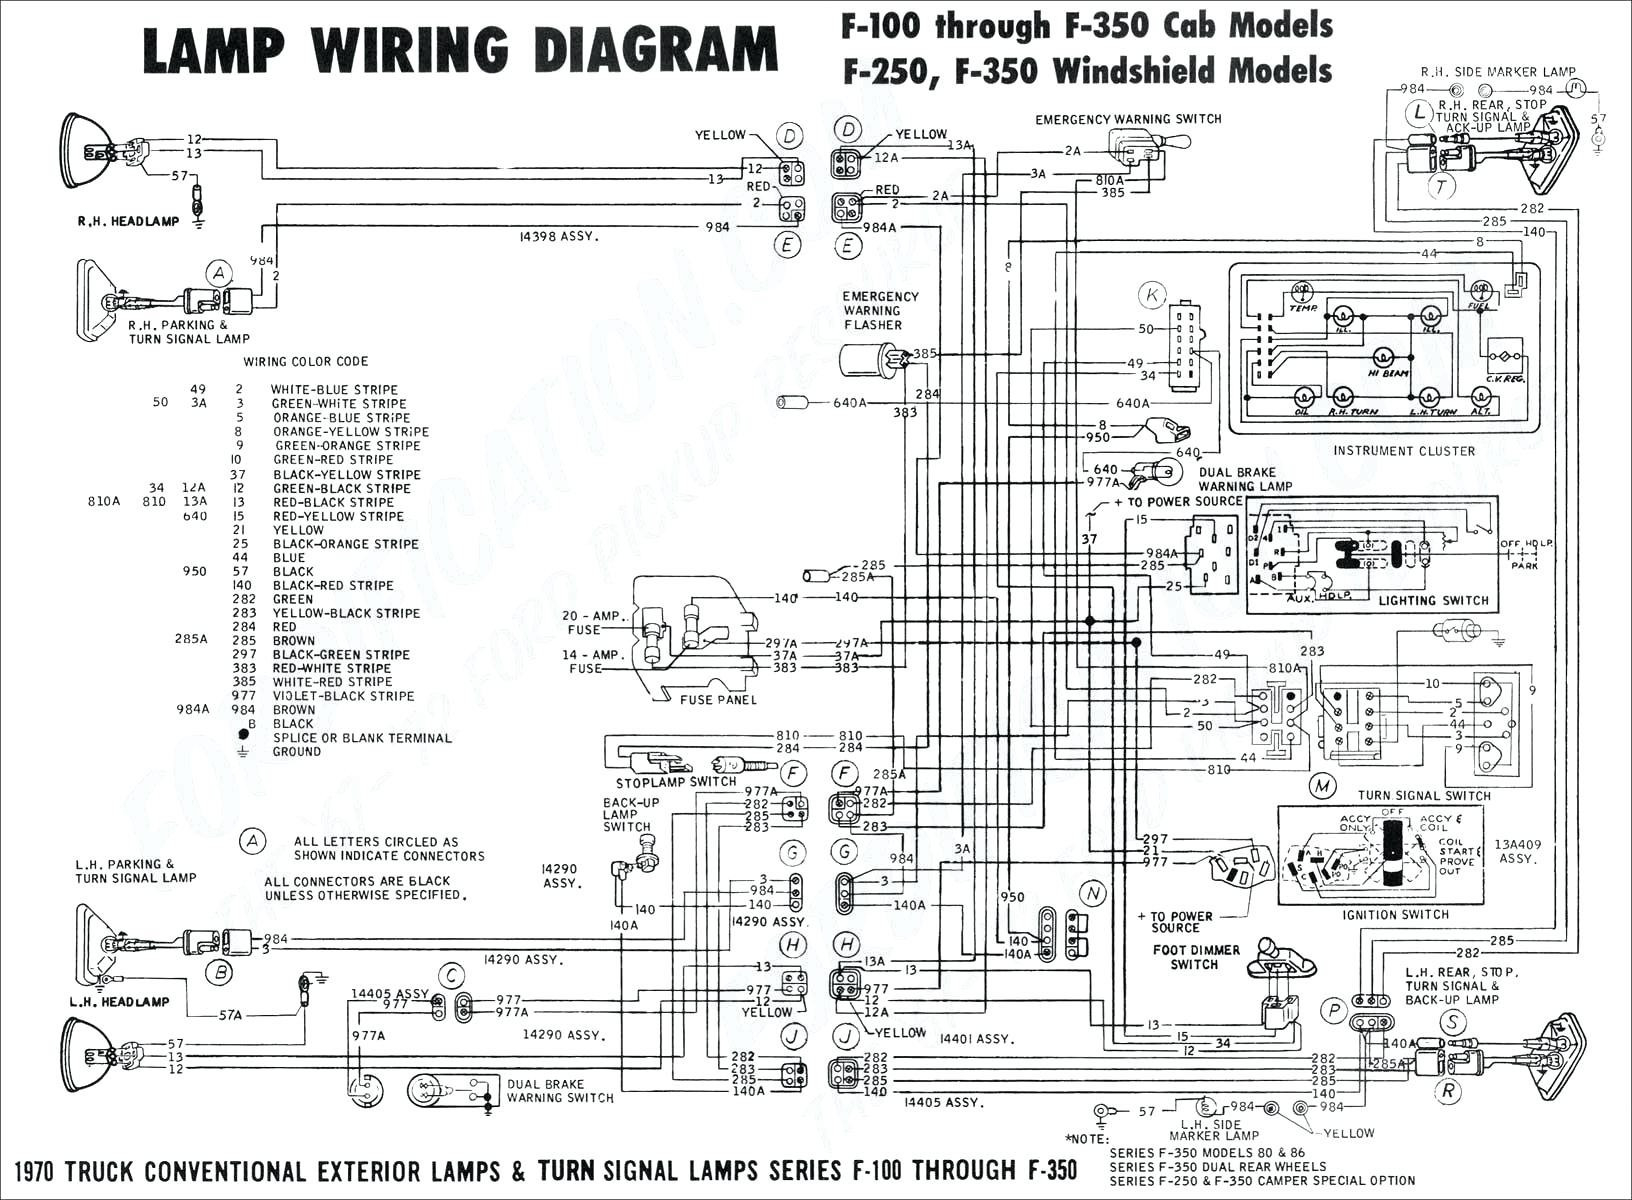 fusion headlight wiring schematics wiring diagrams u2022 rh marapolsa co 2014 ford fusion headlight wiring diagram 2007 ford fusion headlight wiring diagram